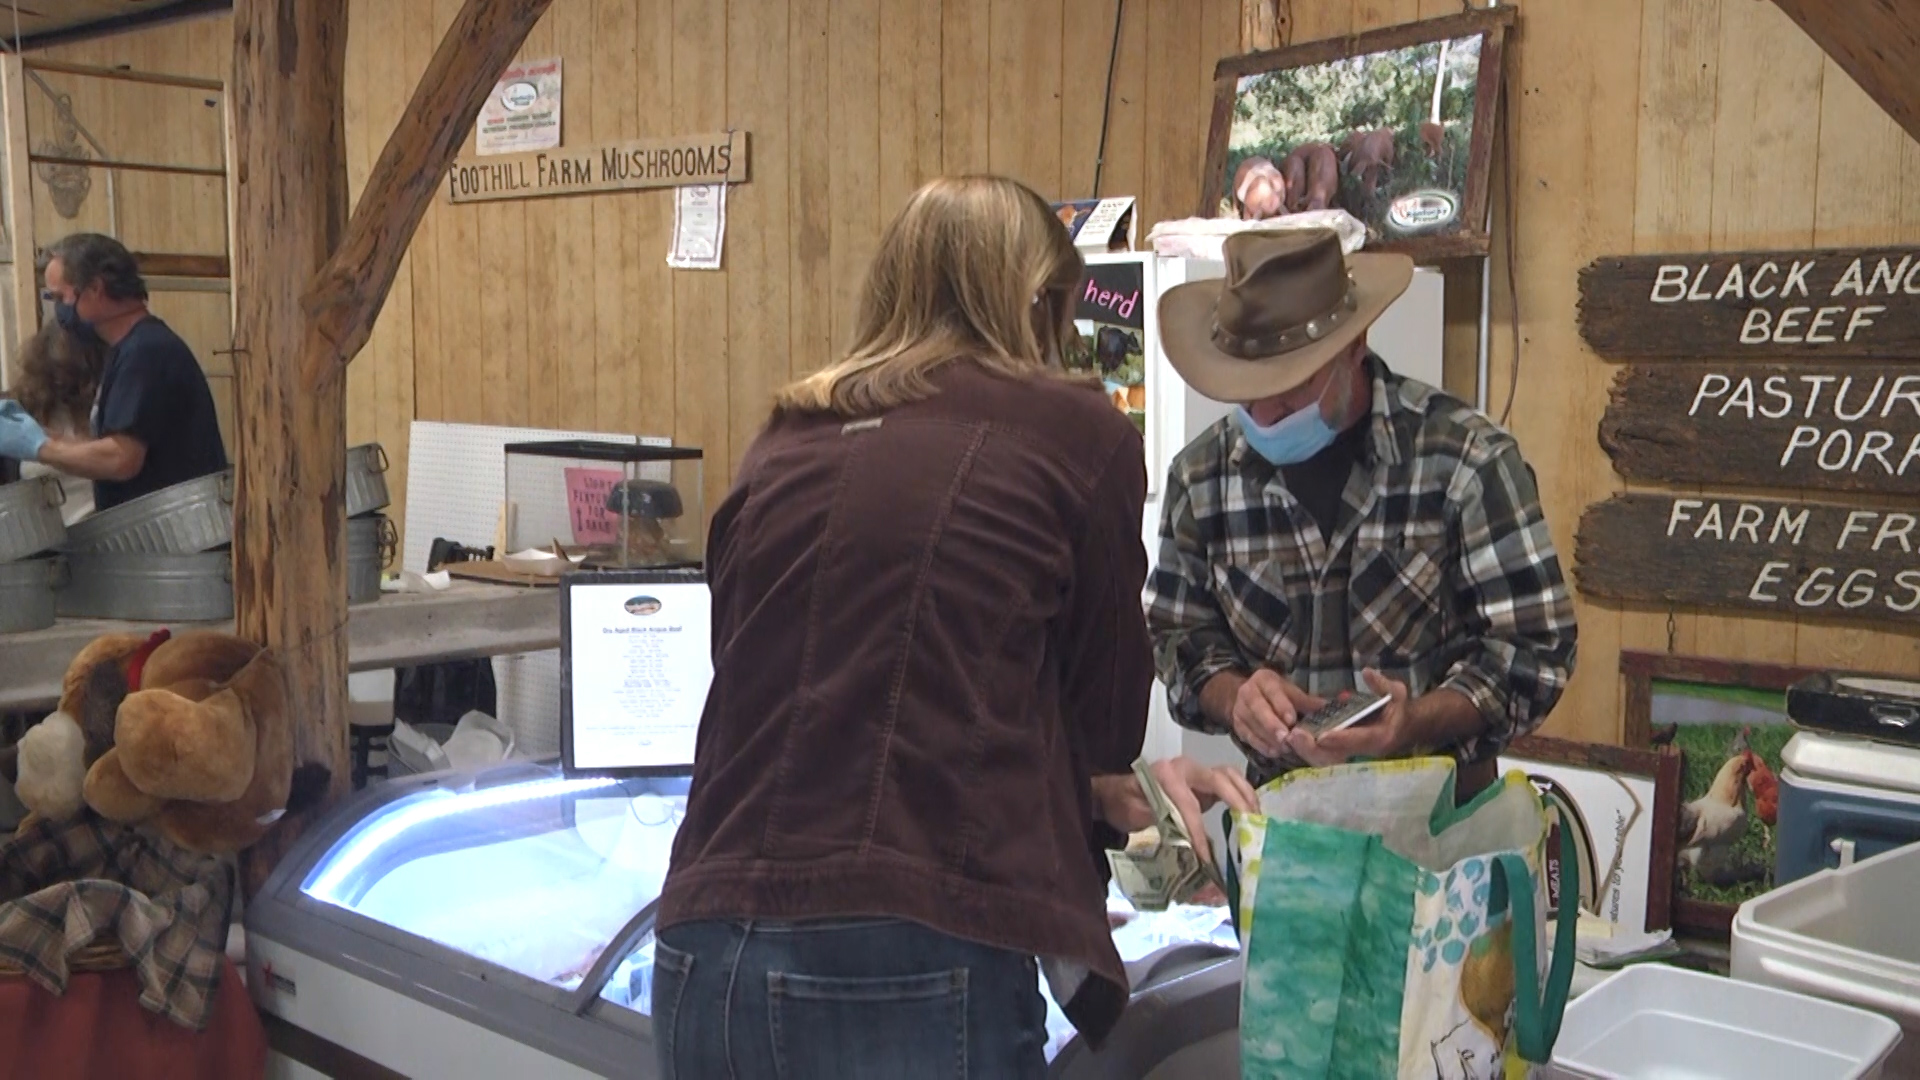 Famers markets stay open during pandemic – WNKY 40 News